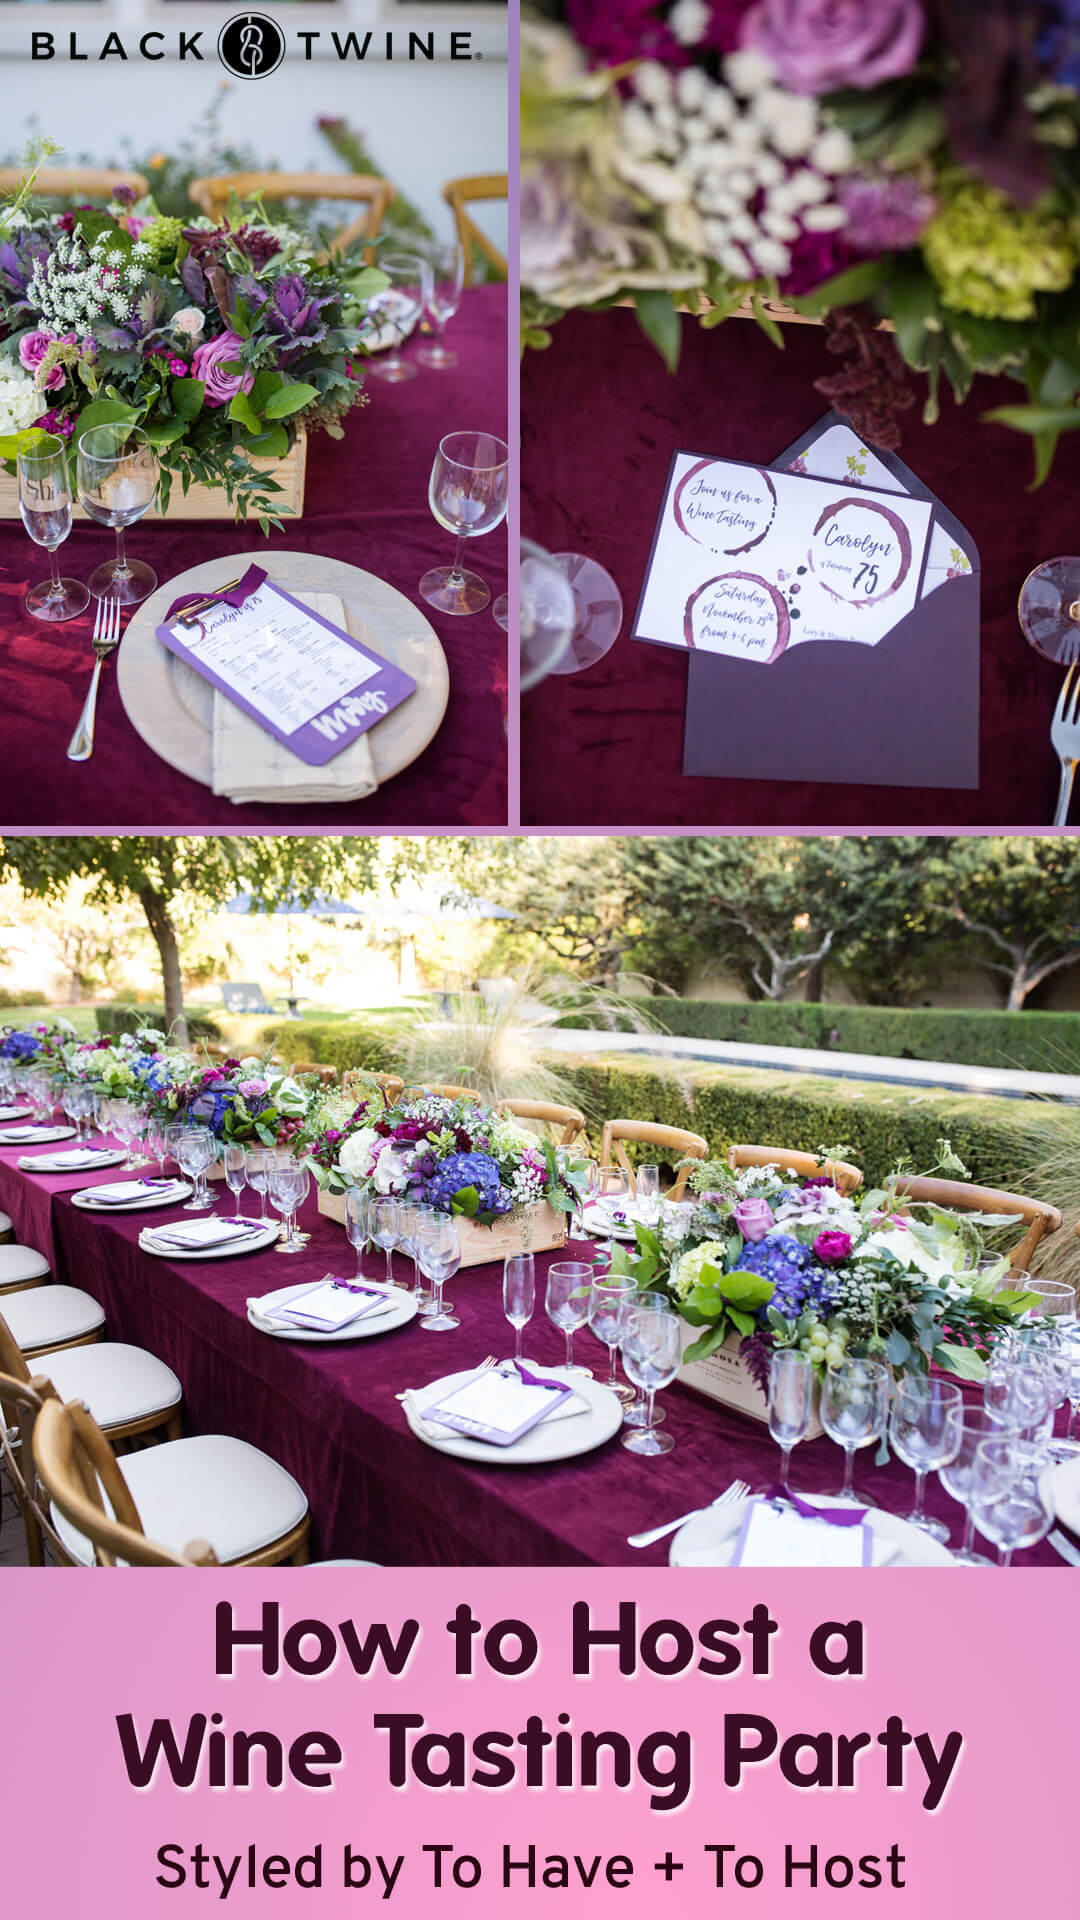 How to Host a Wine Tasting Party from Wine Tasting Party styled by To Have + To Hold | Black Twine